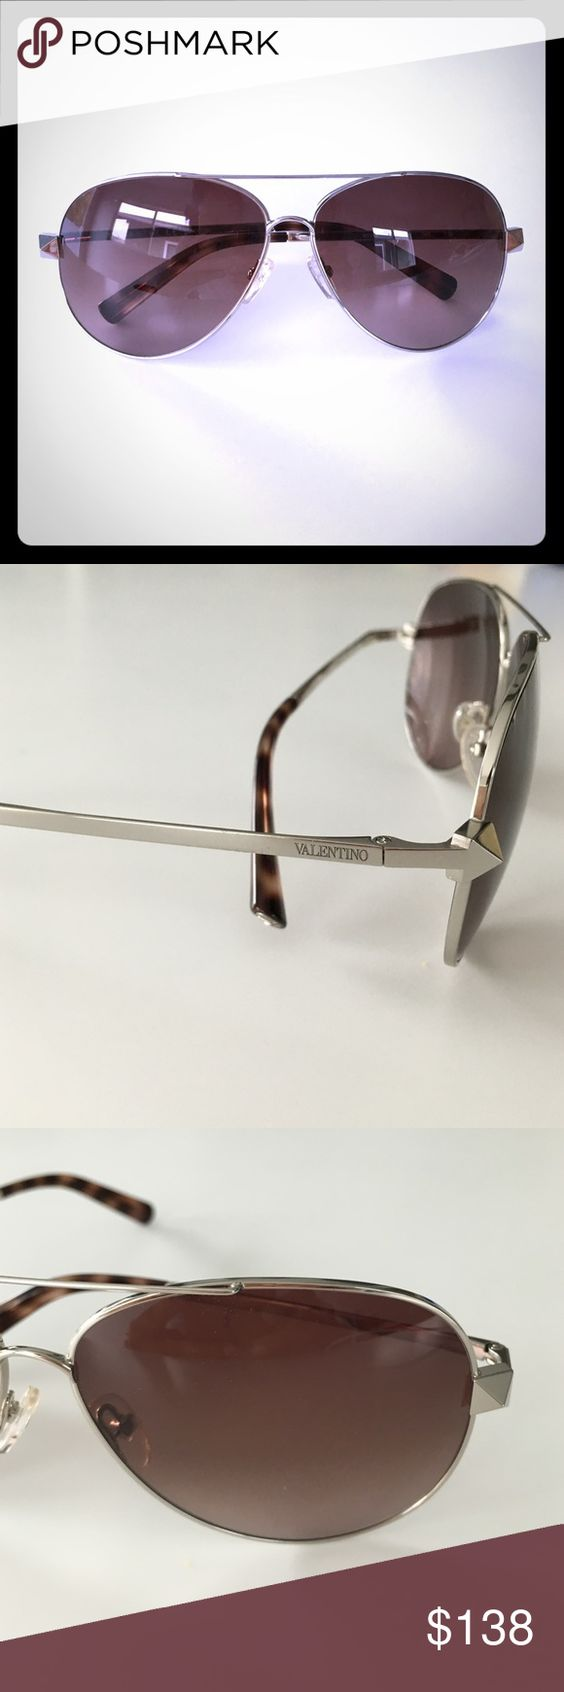 New Valentino Rockstud aviator sunglasses silver New Authentic Valentino Rockstud Aviator sunglasses in silver with brown lens and tortoise on end of sunglasses arm. Super chic and this season. No scratches or marks these are new. Valentino Accessories Sunglasses